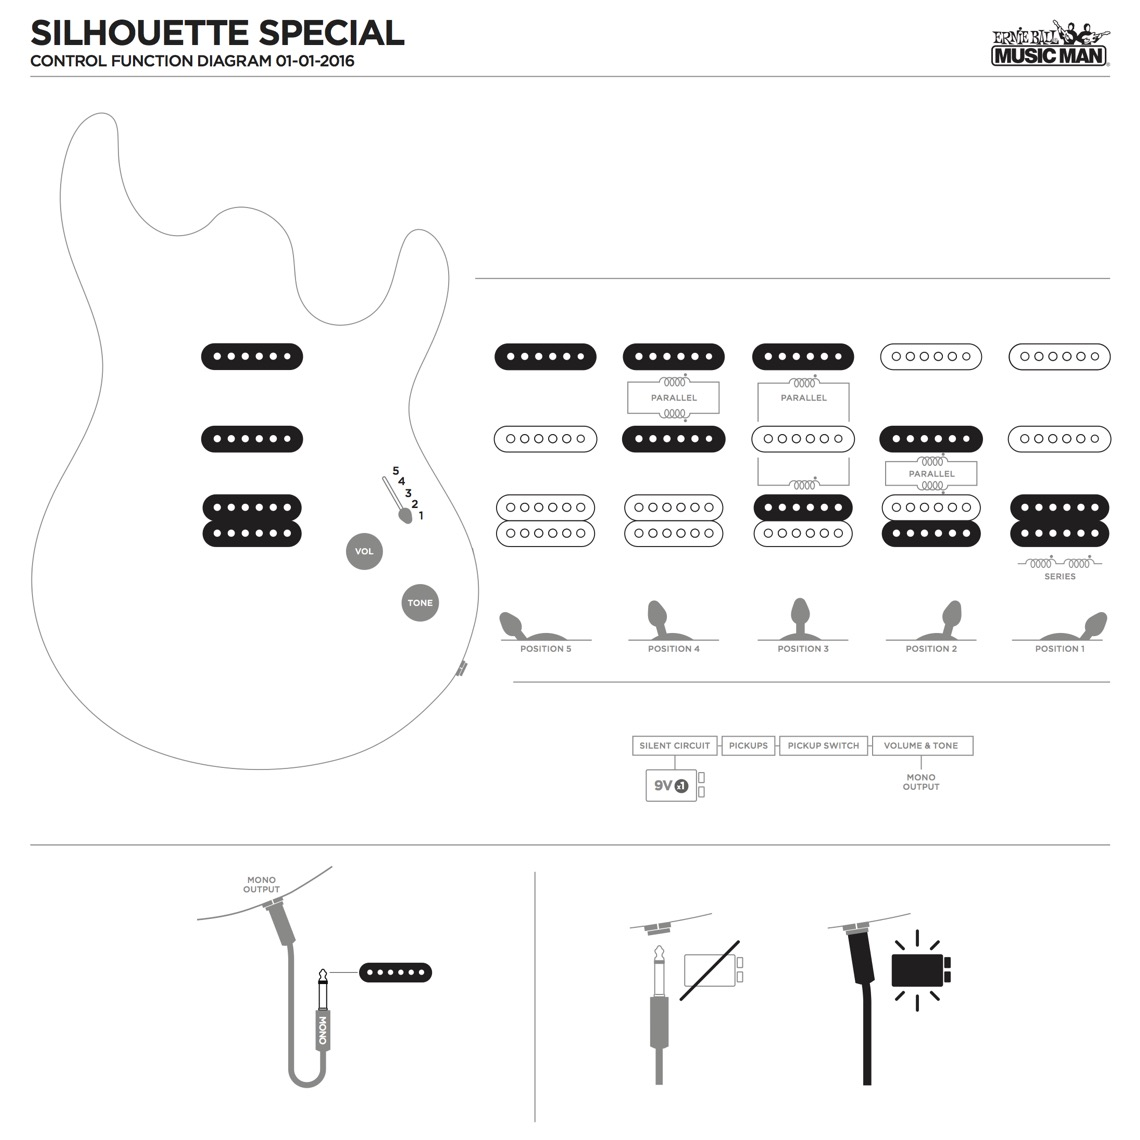 body 15?1454006784 silhouette special guitars ernie ball music man musicman majesty wiring diagram at bayanpartner.co